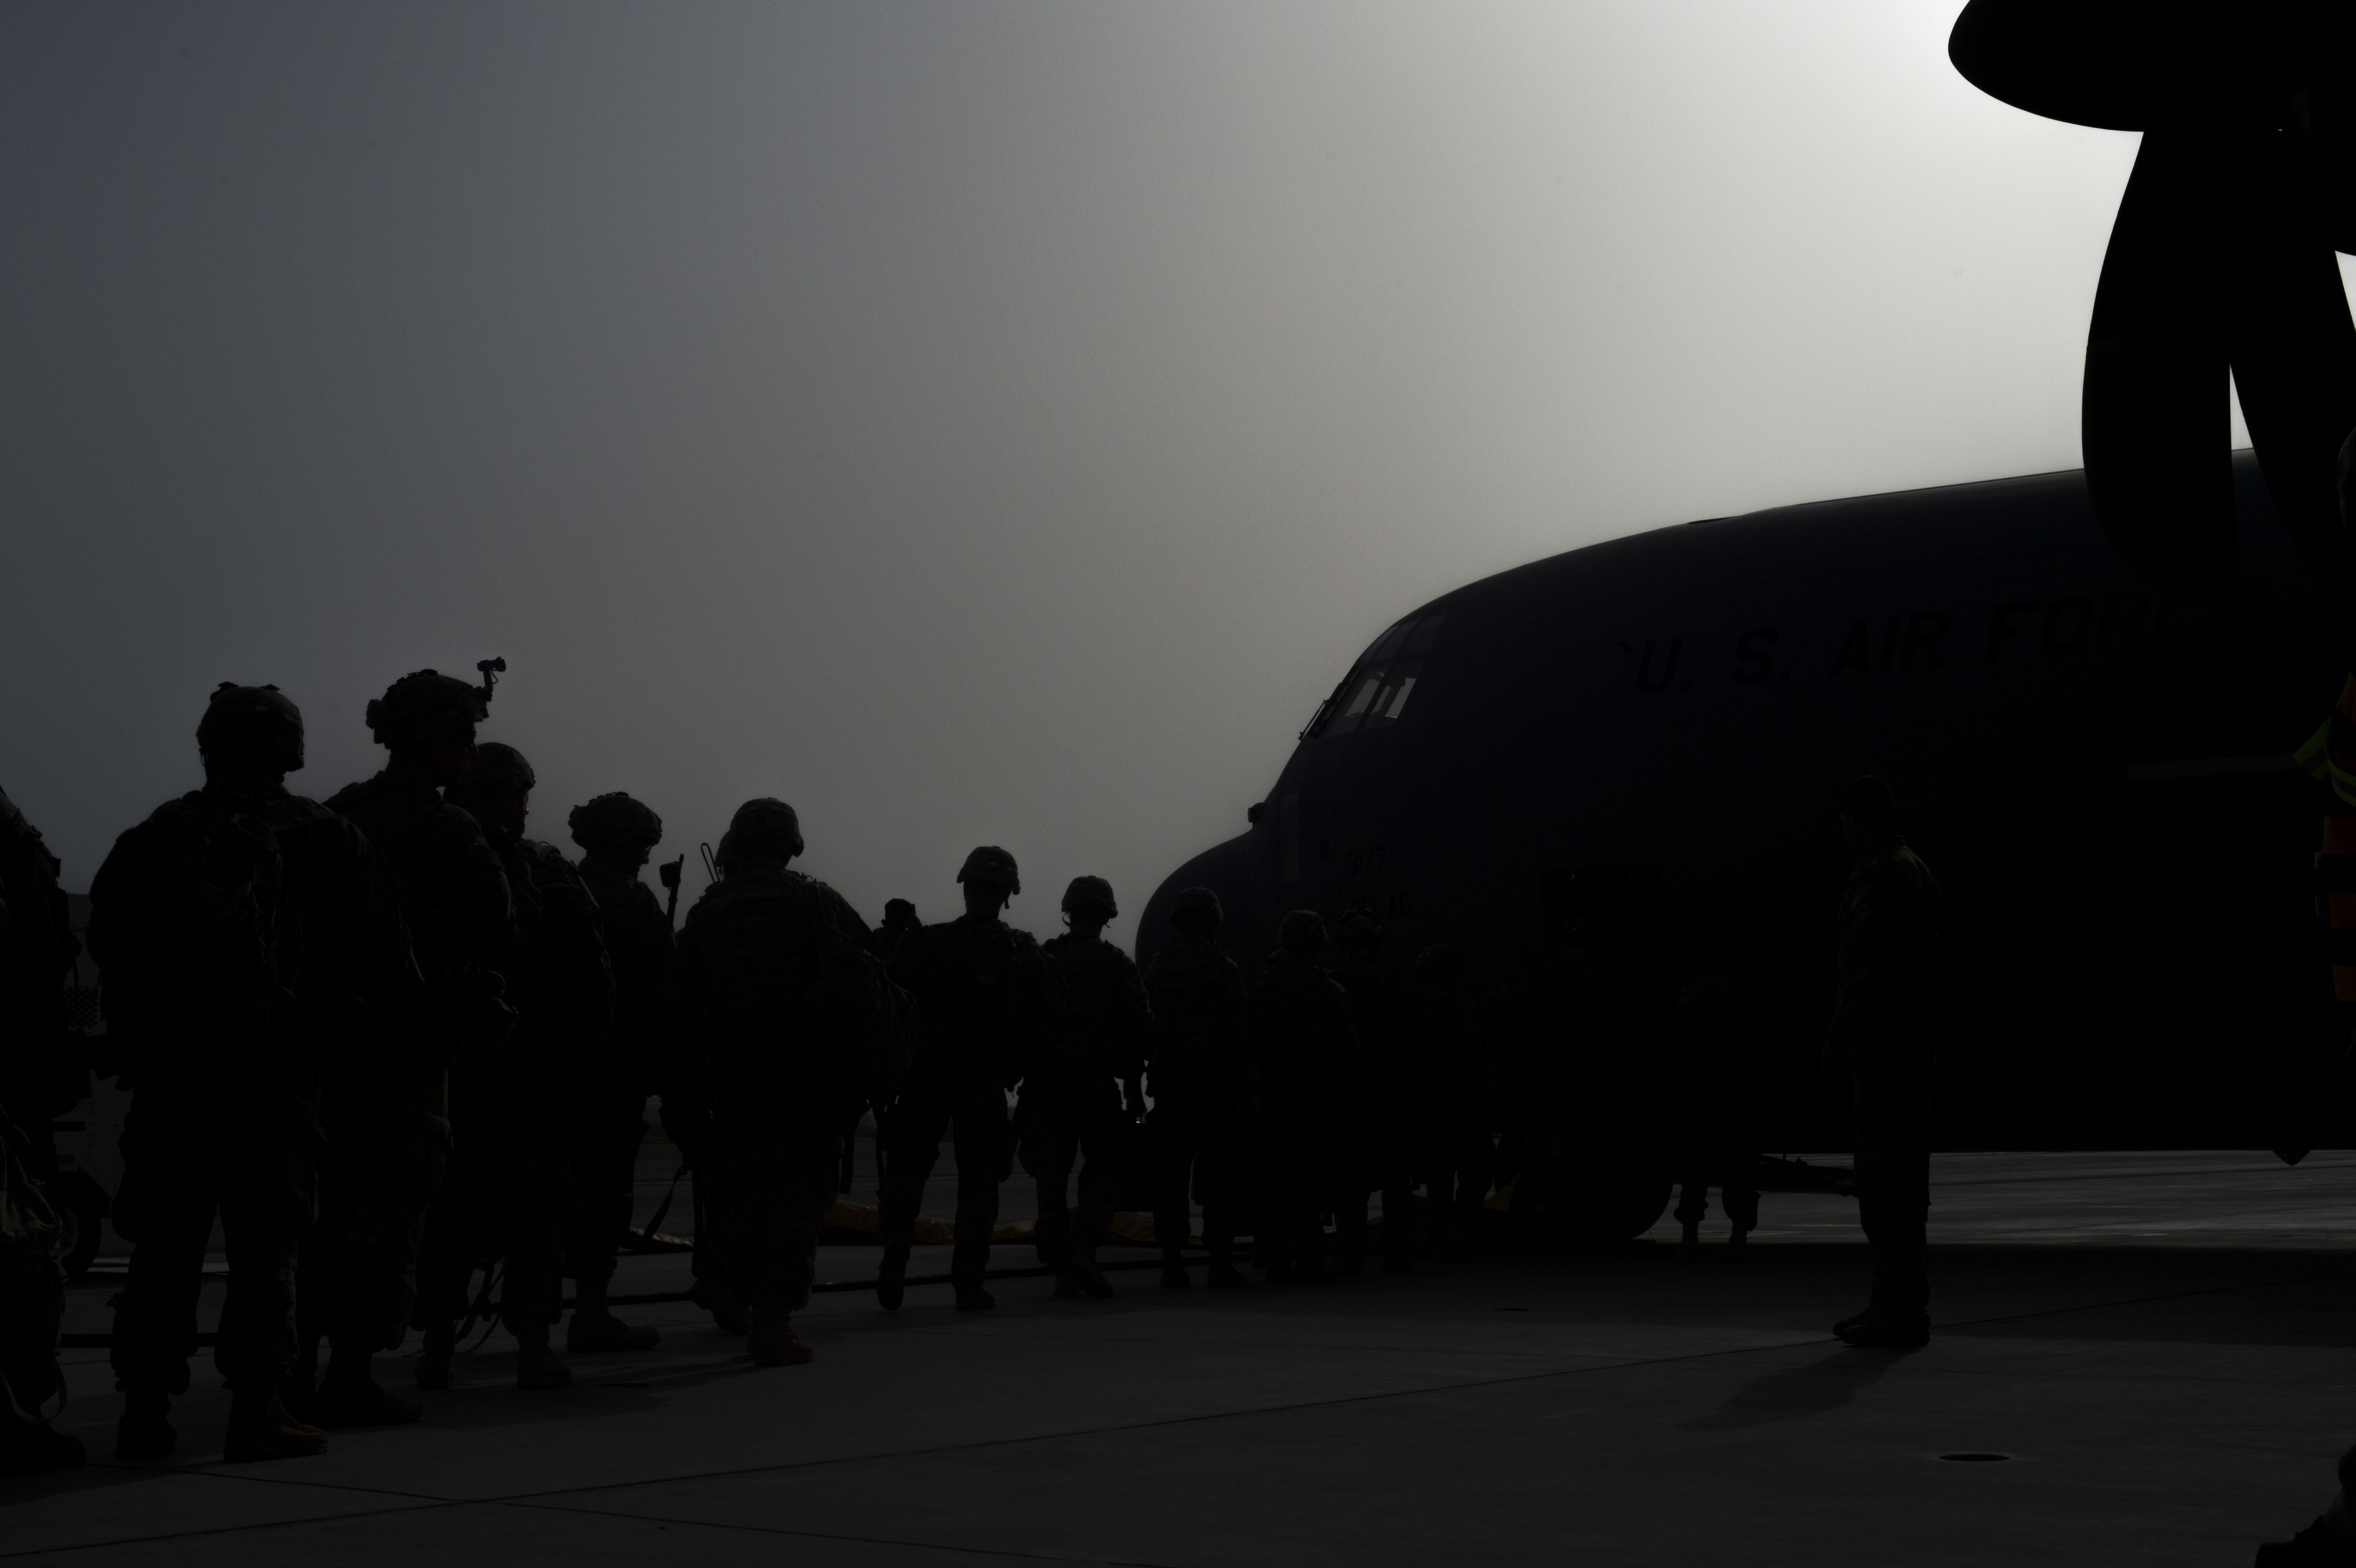 Members of the East African Response Force board a U.S. Air Force C-130J Hercules during an EARF validation exercise May 27, 2016, at Camp Lemonnier, Djibouti. The exercise scenario tested Combined Joint Task Force-Horn of Africa's ability to rapidly stage and deploy the EARF during a crisis in the East Africa region. (U.S. Air Force photo by Staff Sgt. Eric Summers Jr.)